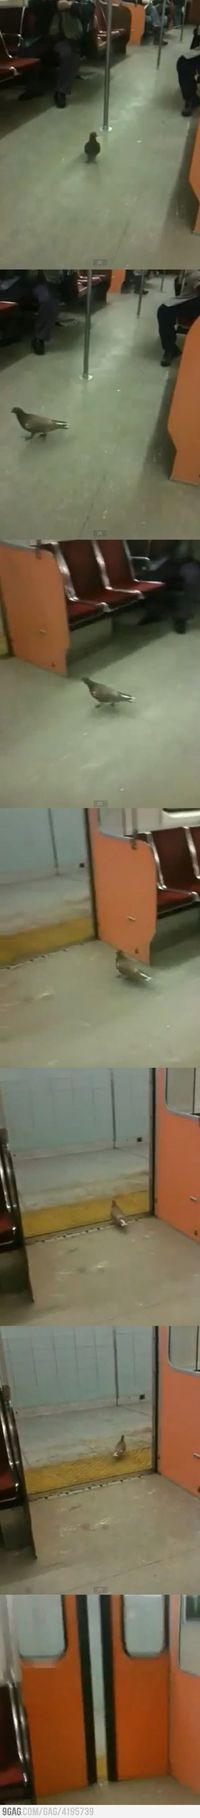 Just a normal pigeon in the Subway